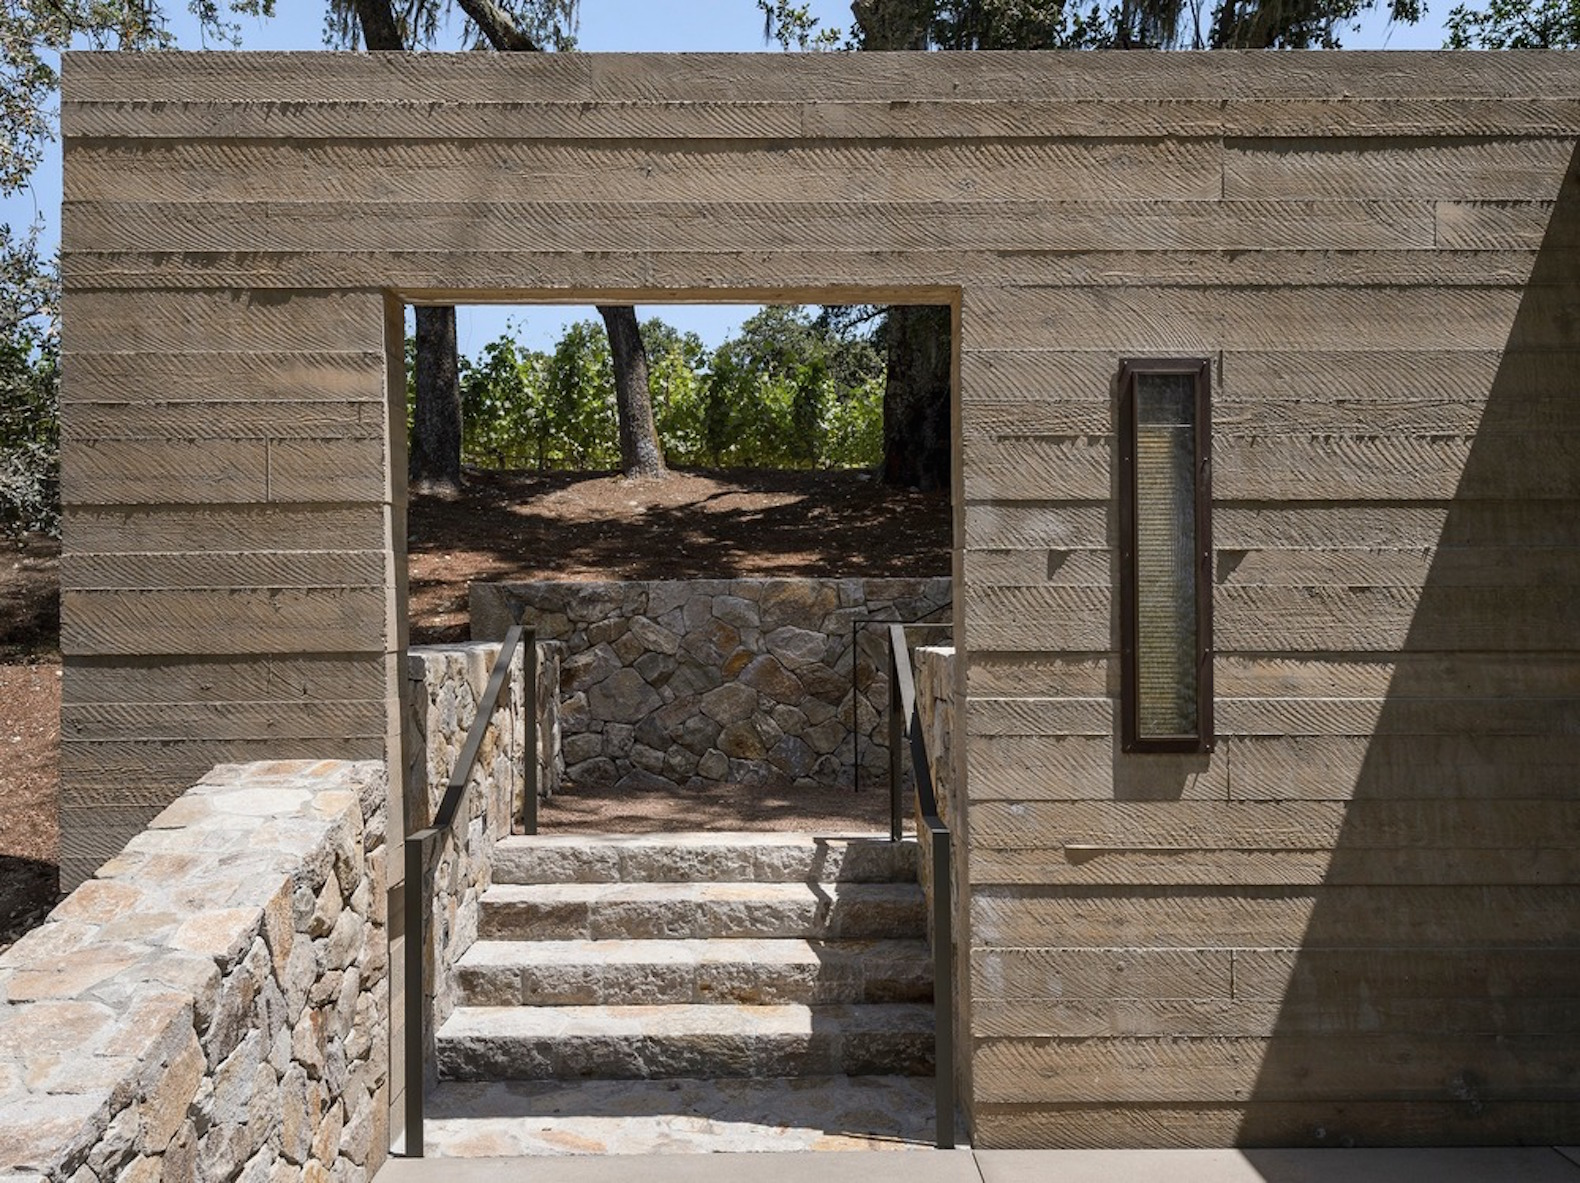 Quintessa Pavilions by Walker Warner Architects, Quintessa Estate Winery, winery pavilions Napa Valley, winery pavilion architecture, winery pavilions by Walker Warner Architects, AIA SF citation awards 2017, Napa Valley minimalist architecture, sustainable architecture Napa Valley